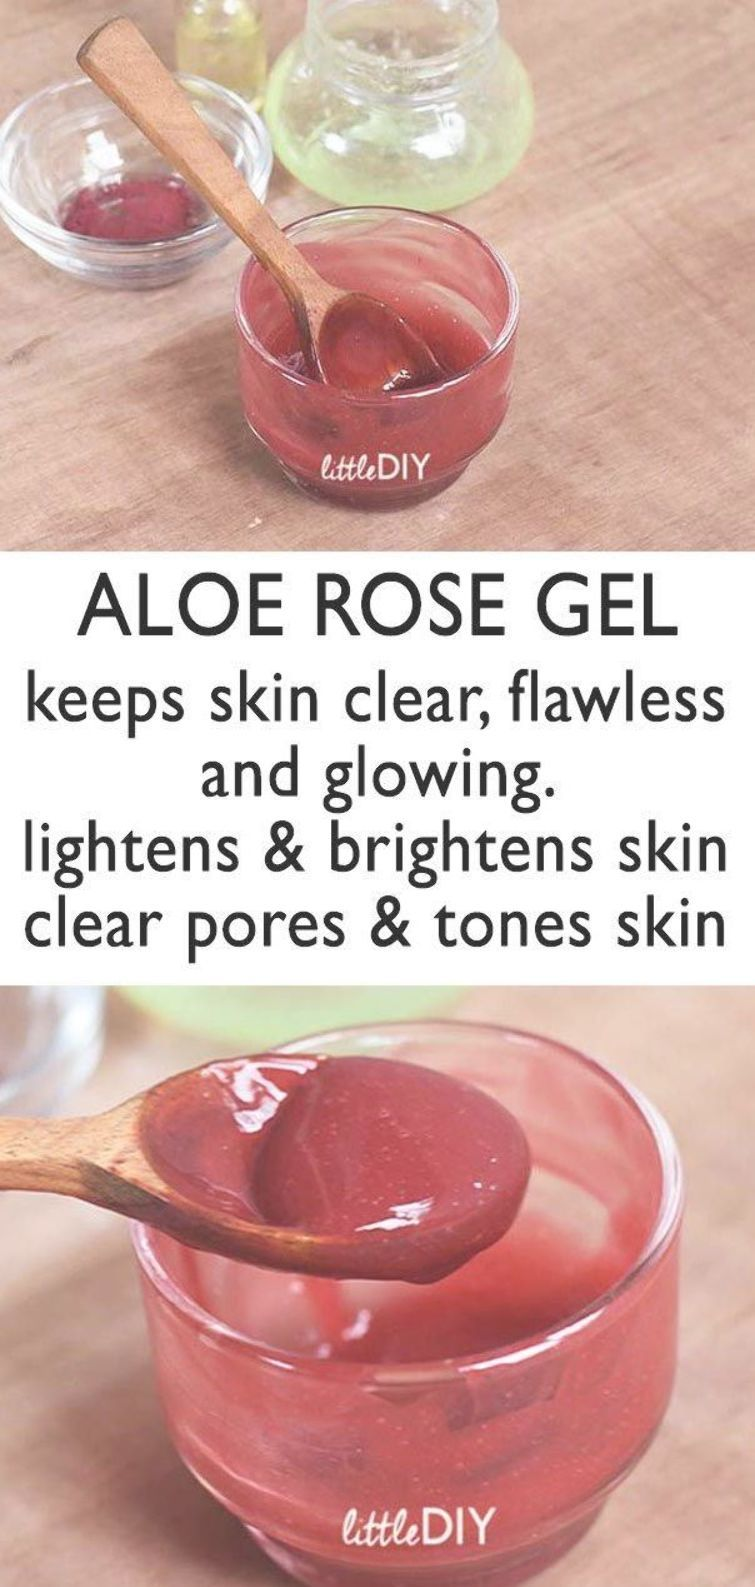 Aloe Rose Skin Soothing Gel Little Diy Diy Lip Balm Recipes Diy Aromatherapy Watermelon Lip Scrub